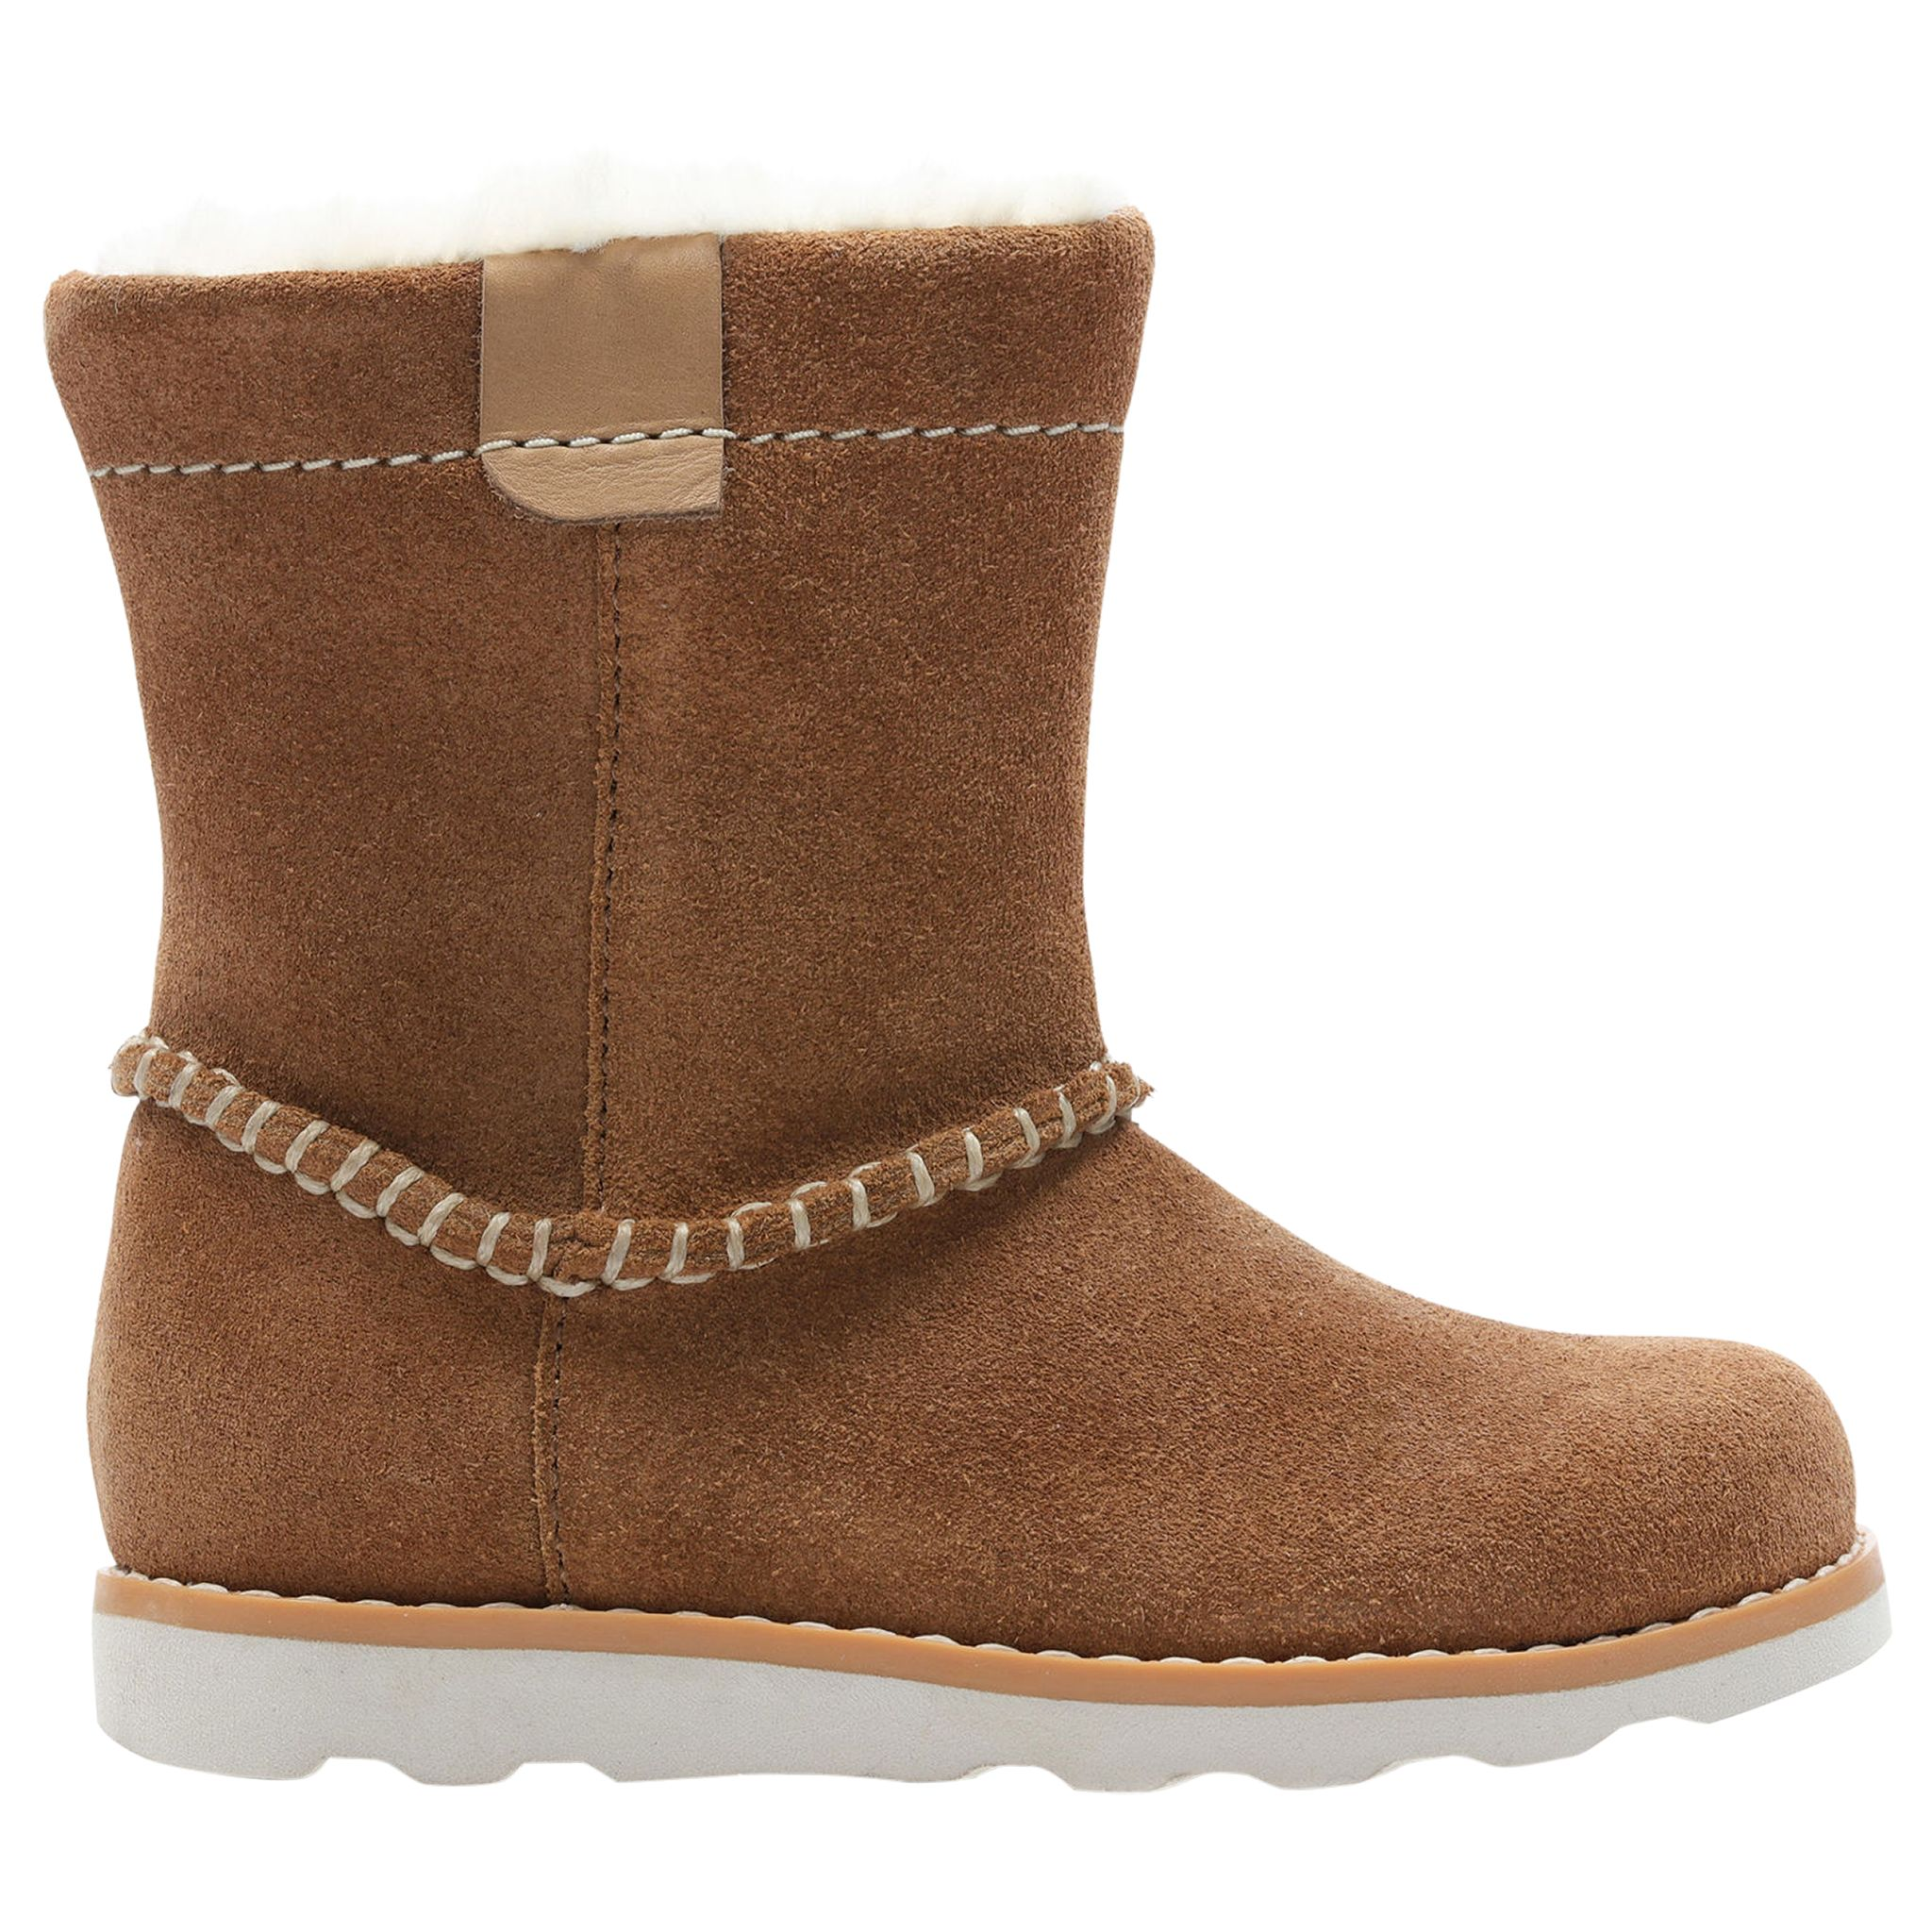 6a4281d6 Clarks Children's Pre School Crown Piper Leather Boots, Tan at John Lewis &  Partners